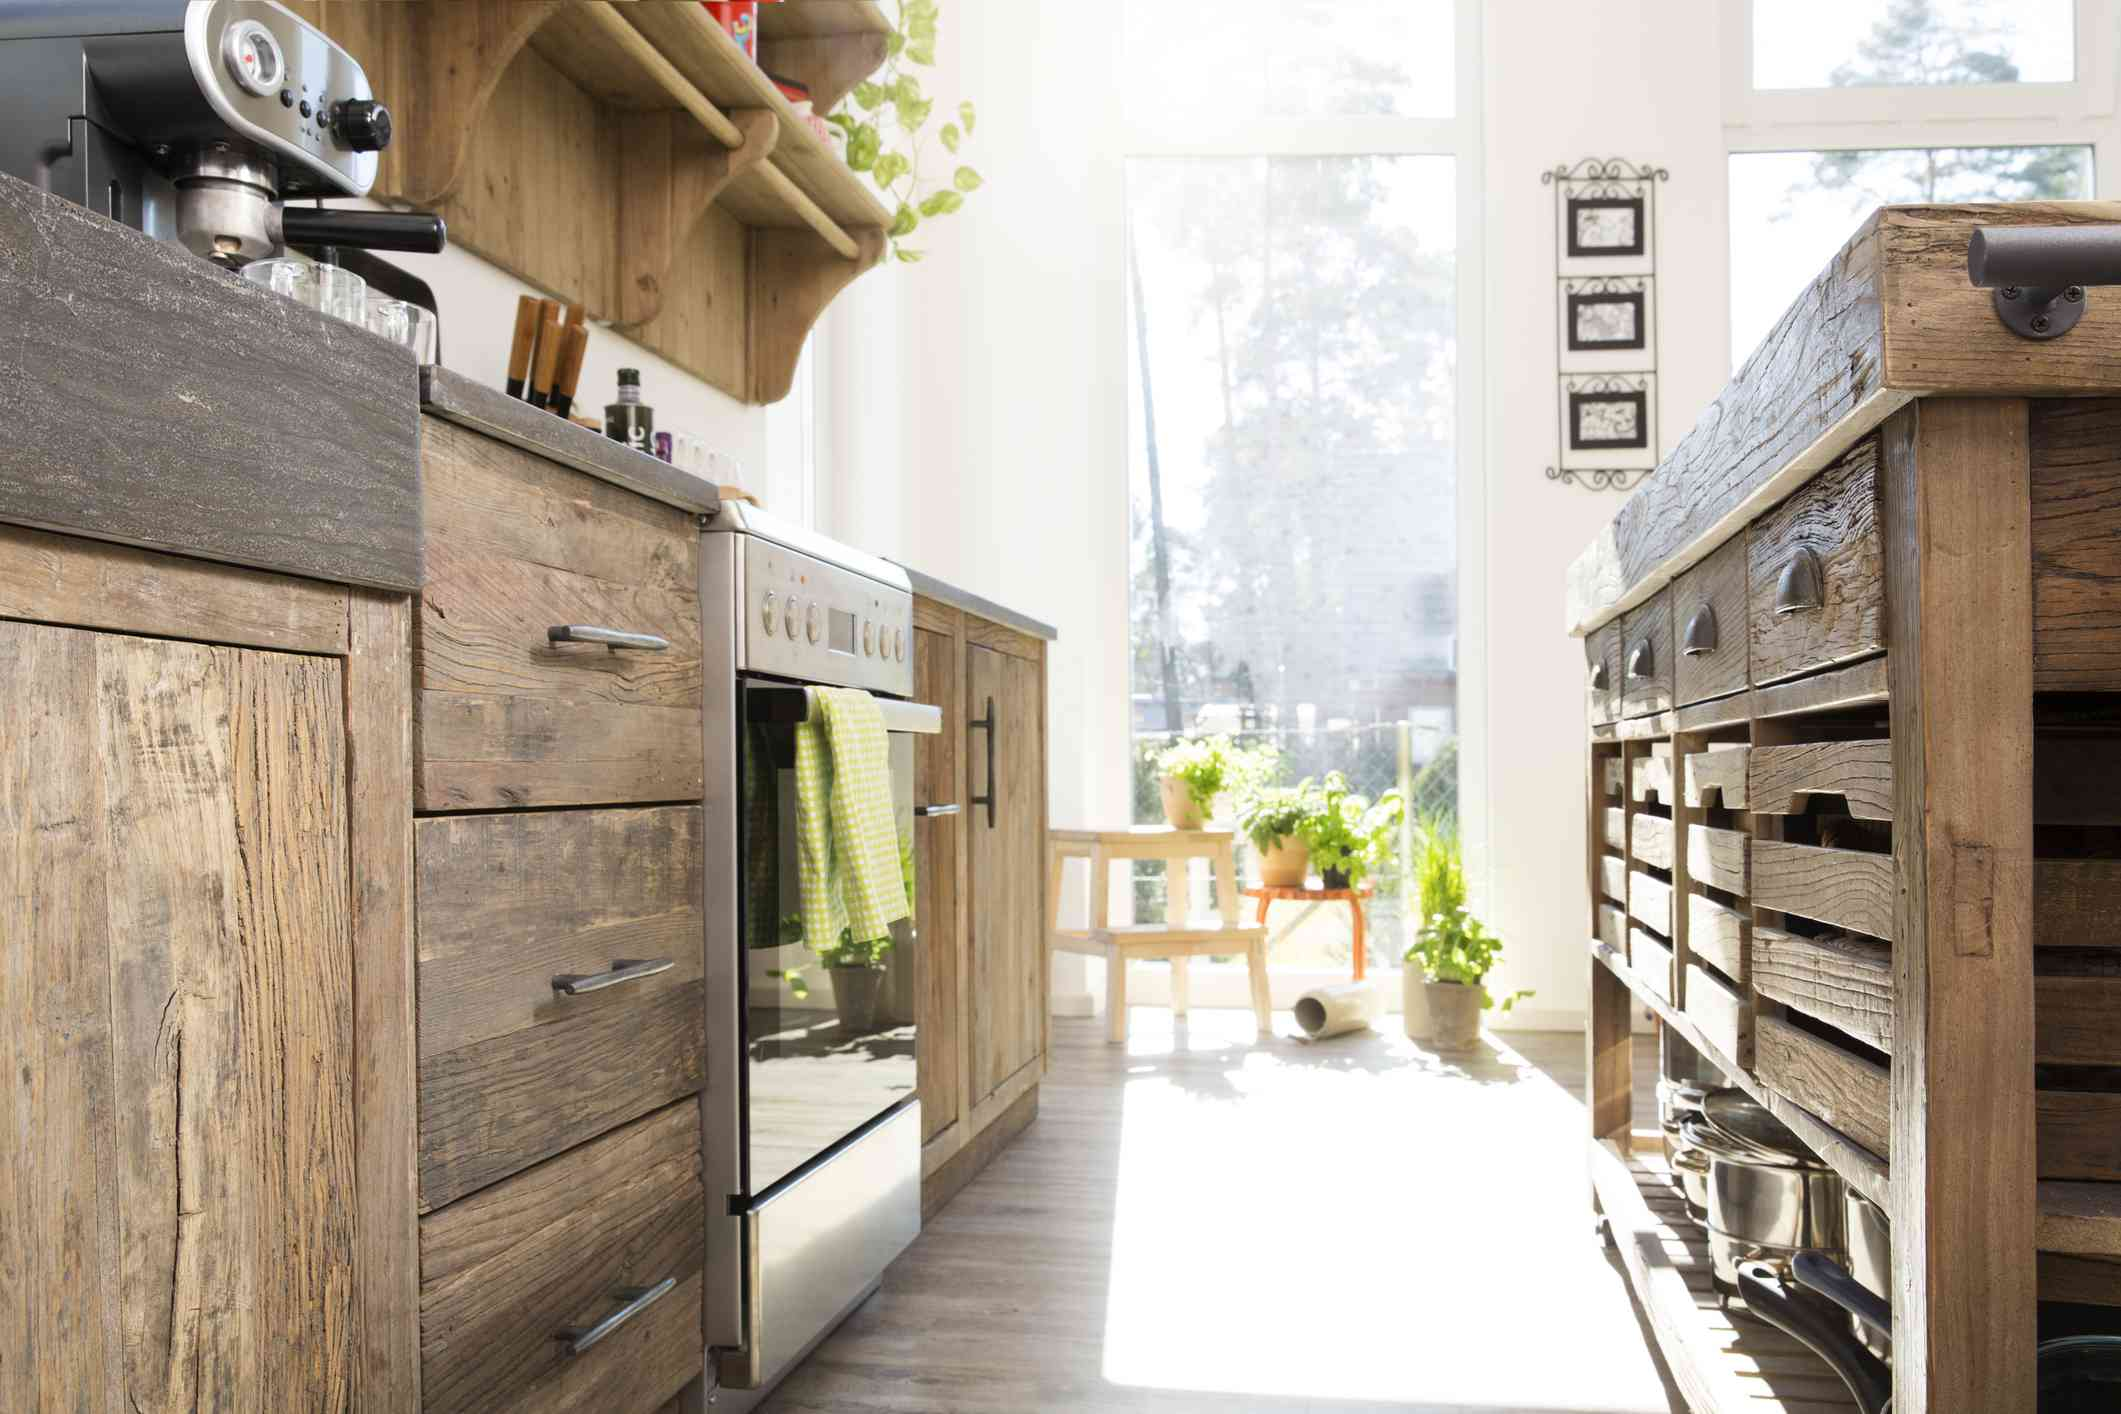 Rustic country-style kitchen cabinets.